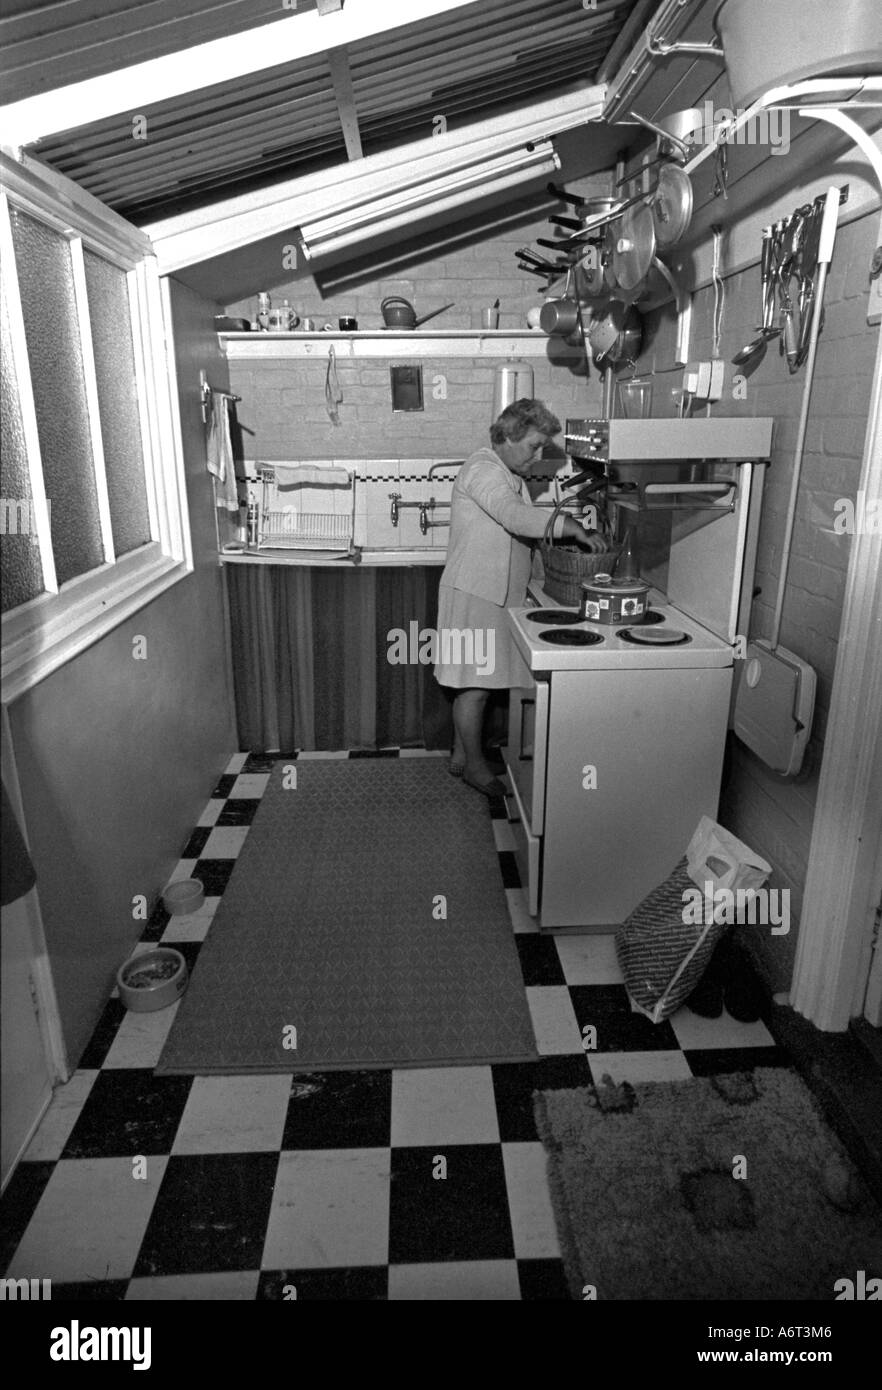 1950s Style Kitchen middle aged woman in 1950's style kitchen stock photo, royalty